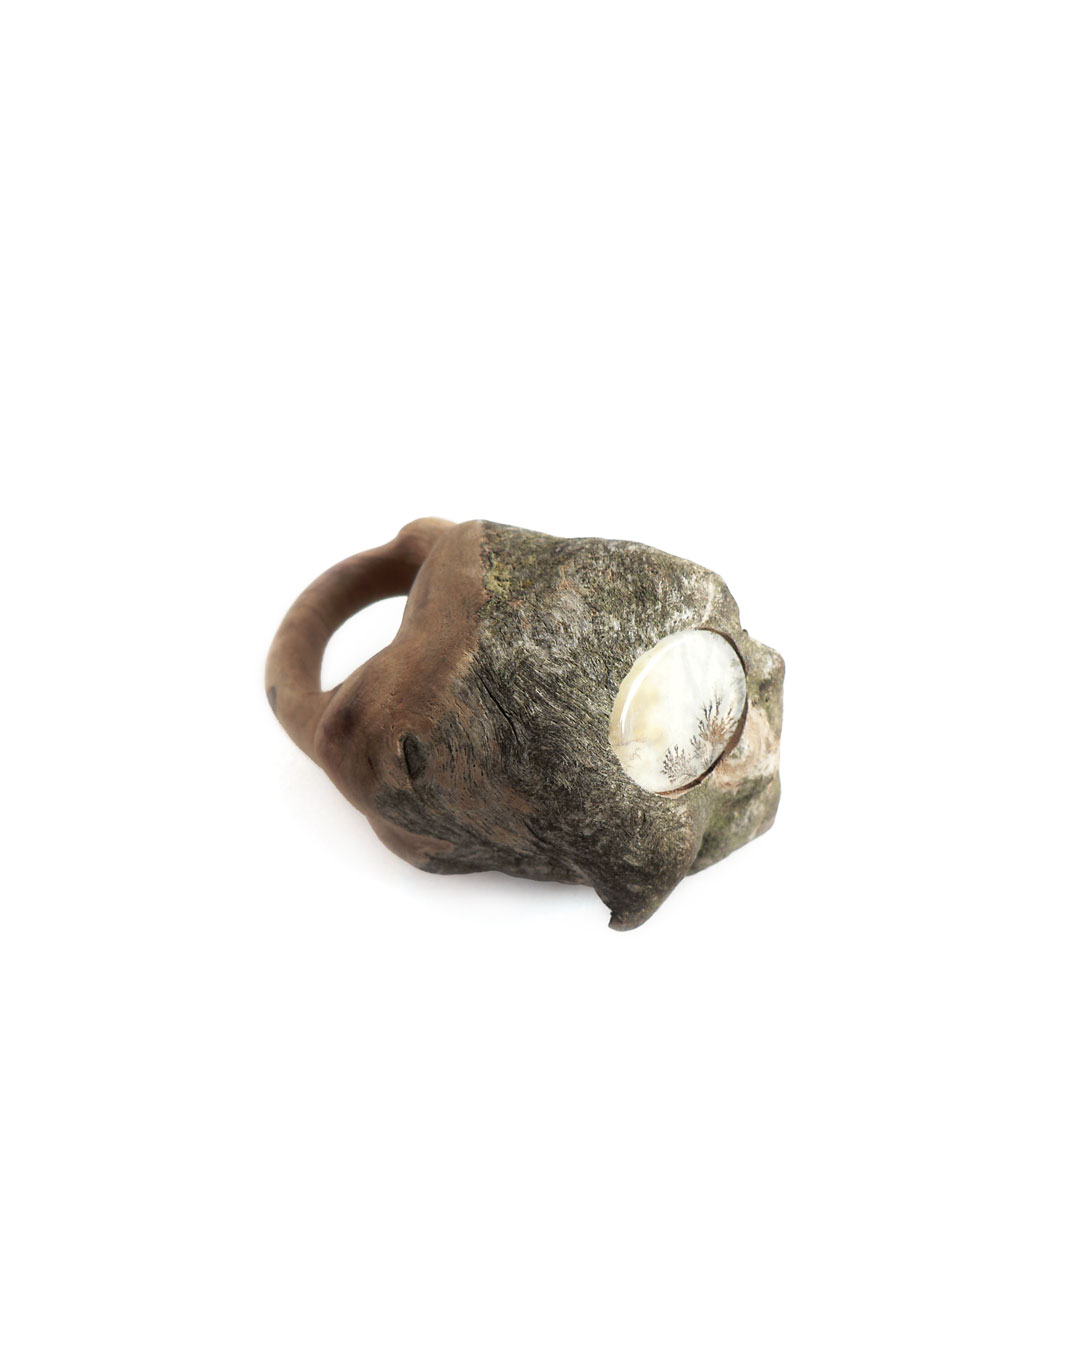 Jenny Klemming, Hortus, 2011, ring; apple wood, agate, 57 x 38 x 42 mm, €950